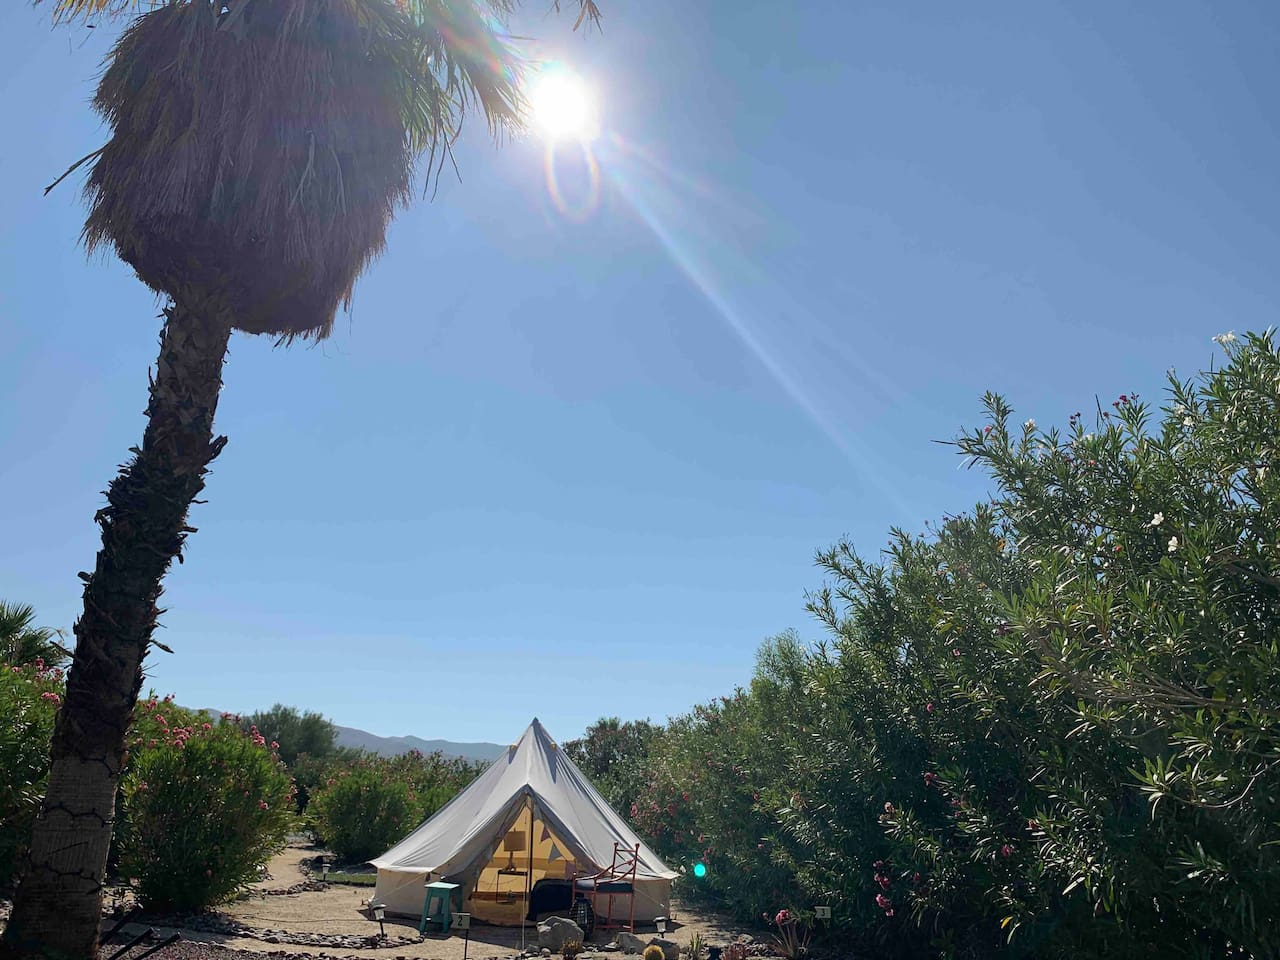 Surrounded by desert oleanders, this glampsite feels like its own private compound, yet civilization is close by!  Enjoy the breathtaking mountain views,  or gaze at the stars, you'll have everything you need for a quiet, rejuvenating get away!